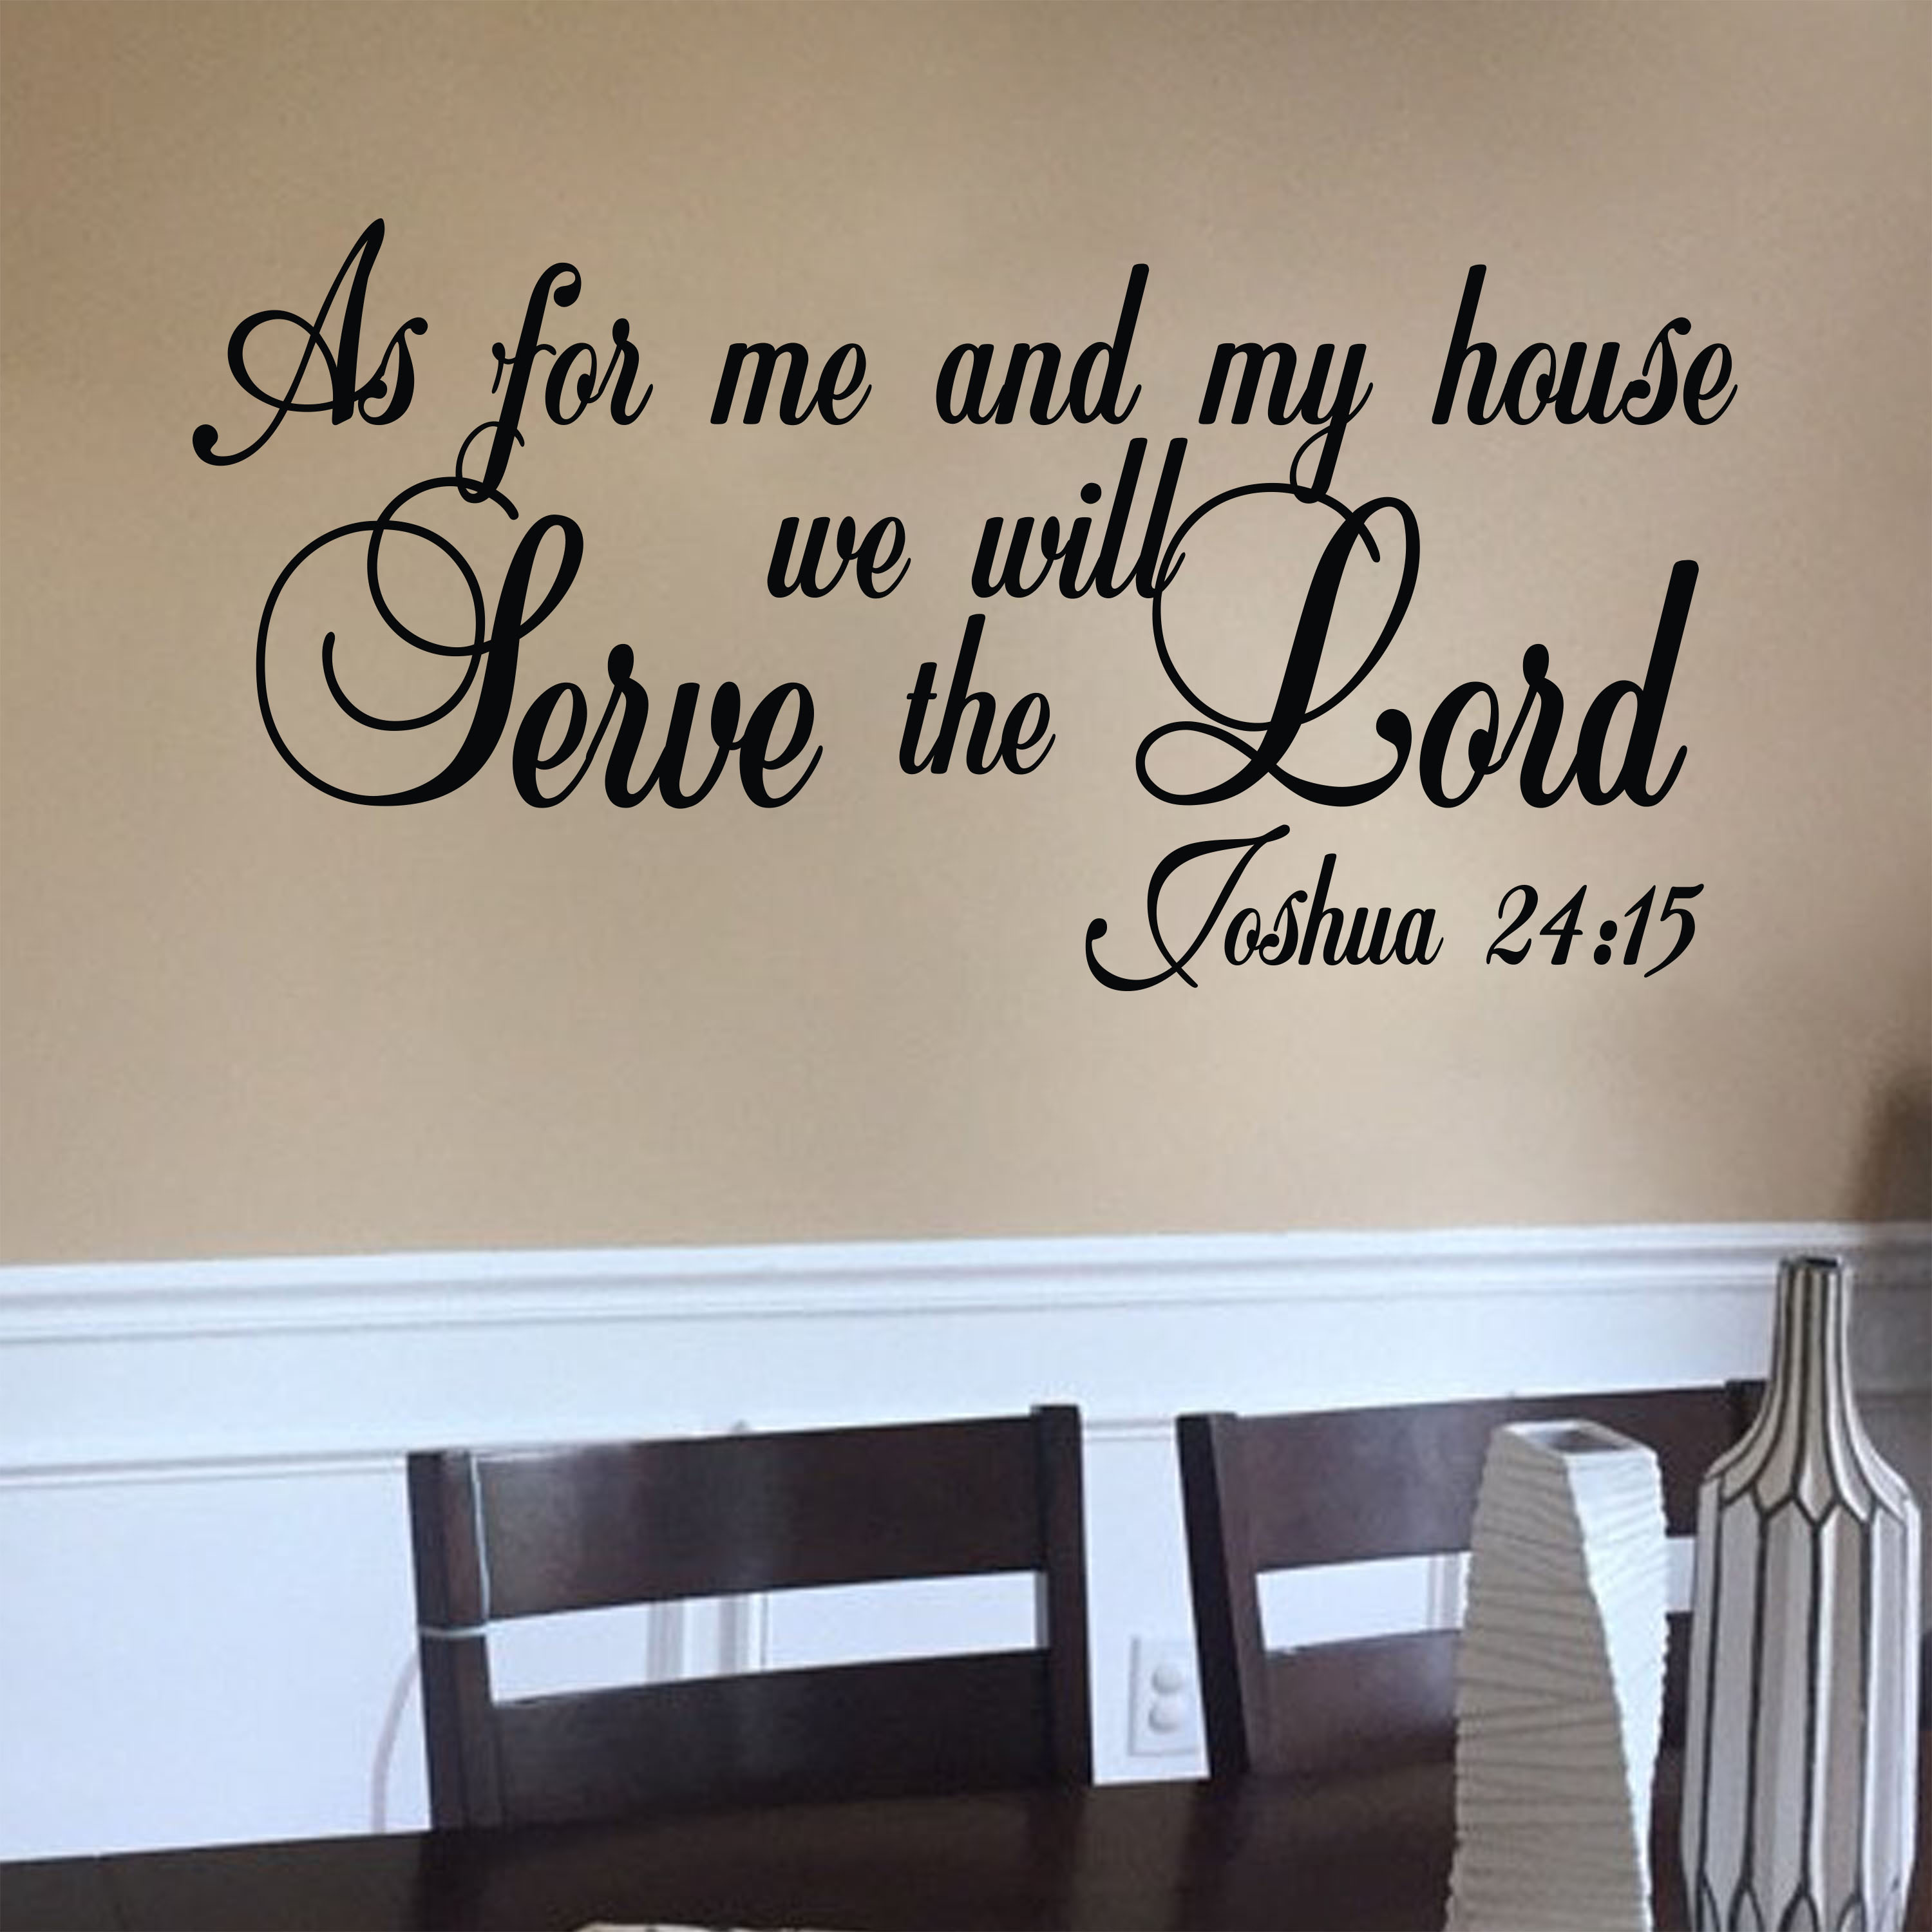 Joshua 2415 vinyl wall decal 9 by wild eyes signs as for me and my house we will serve the lord scripture wall vinyl bible verse art lettering